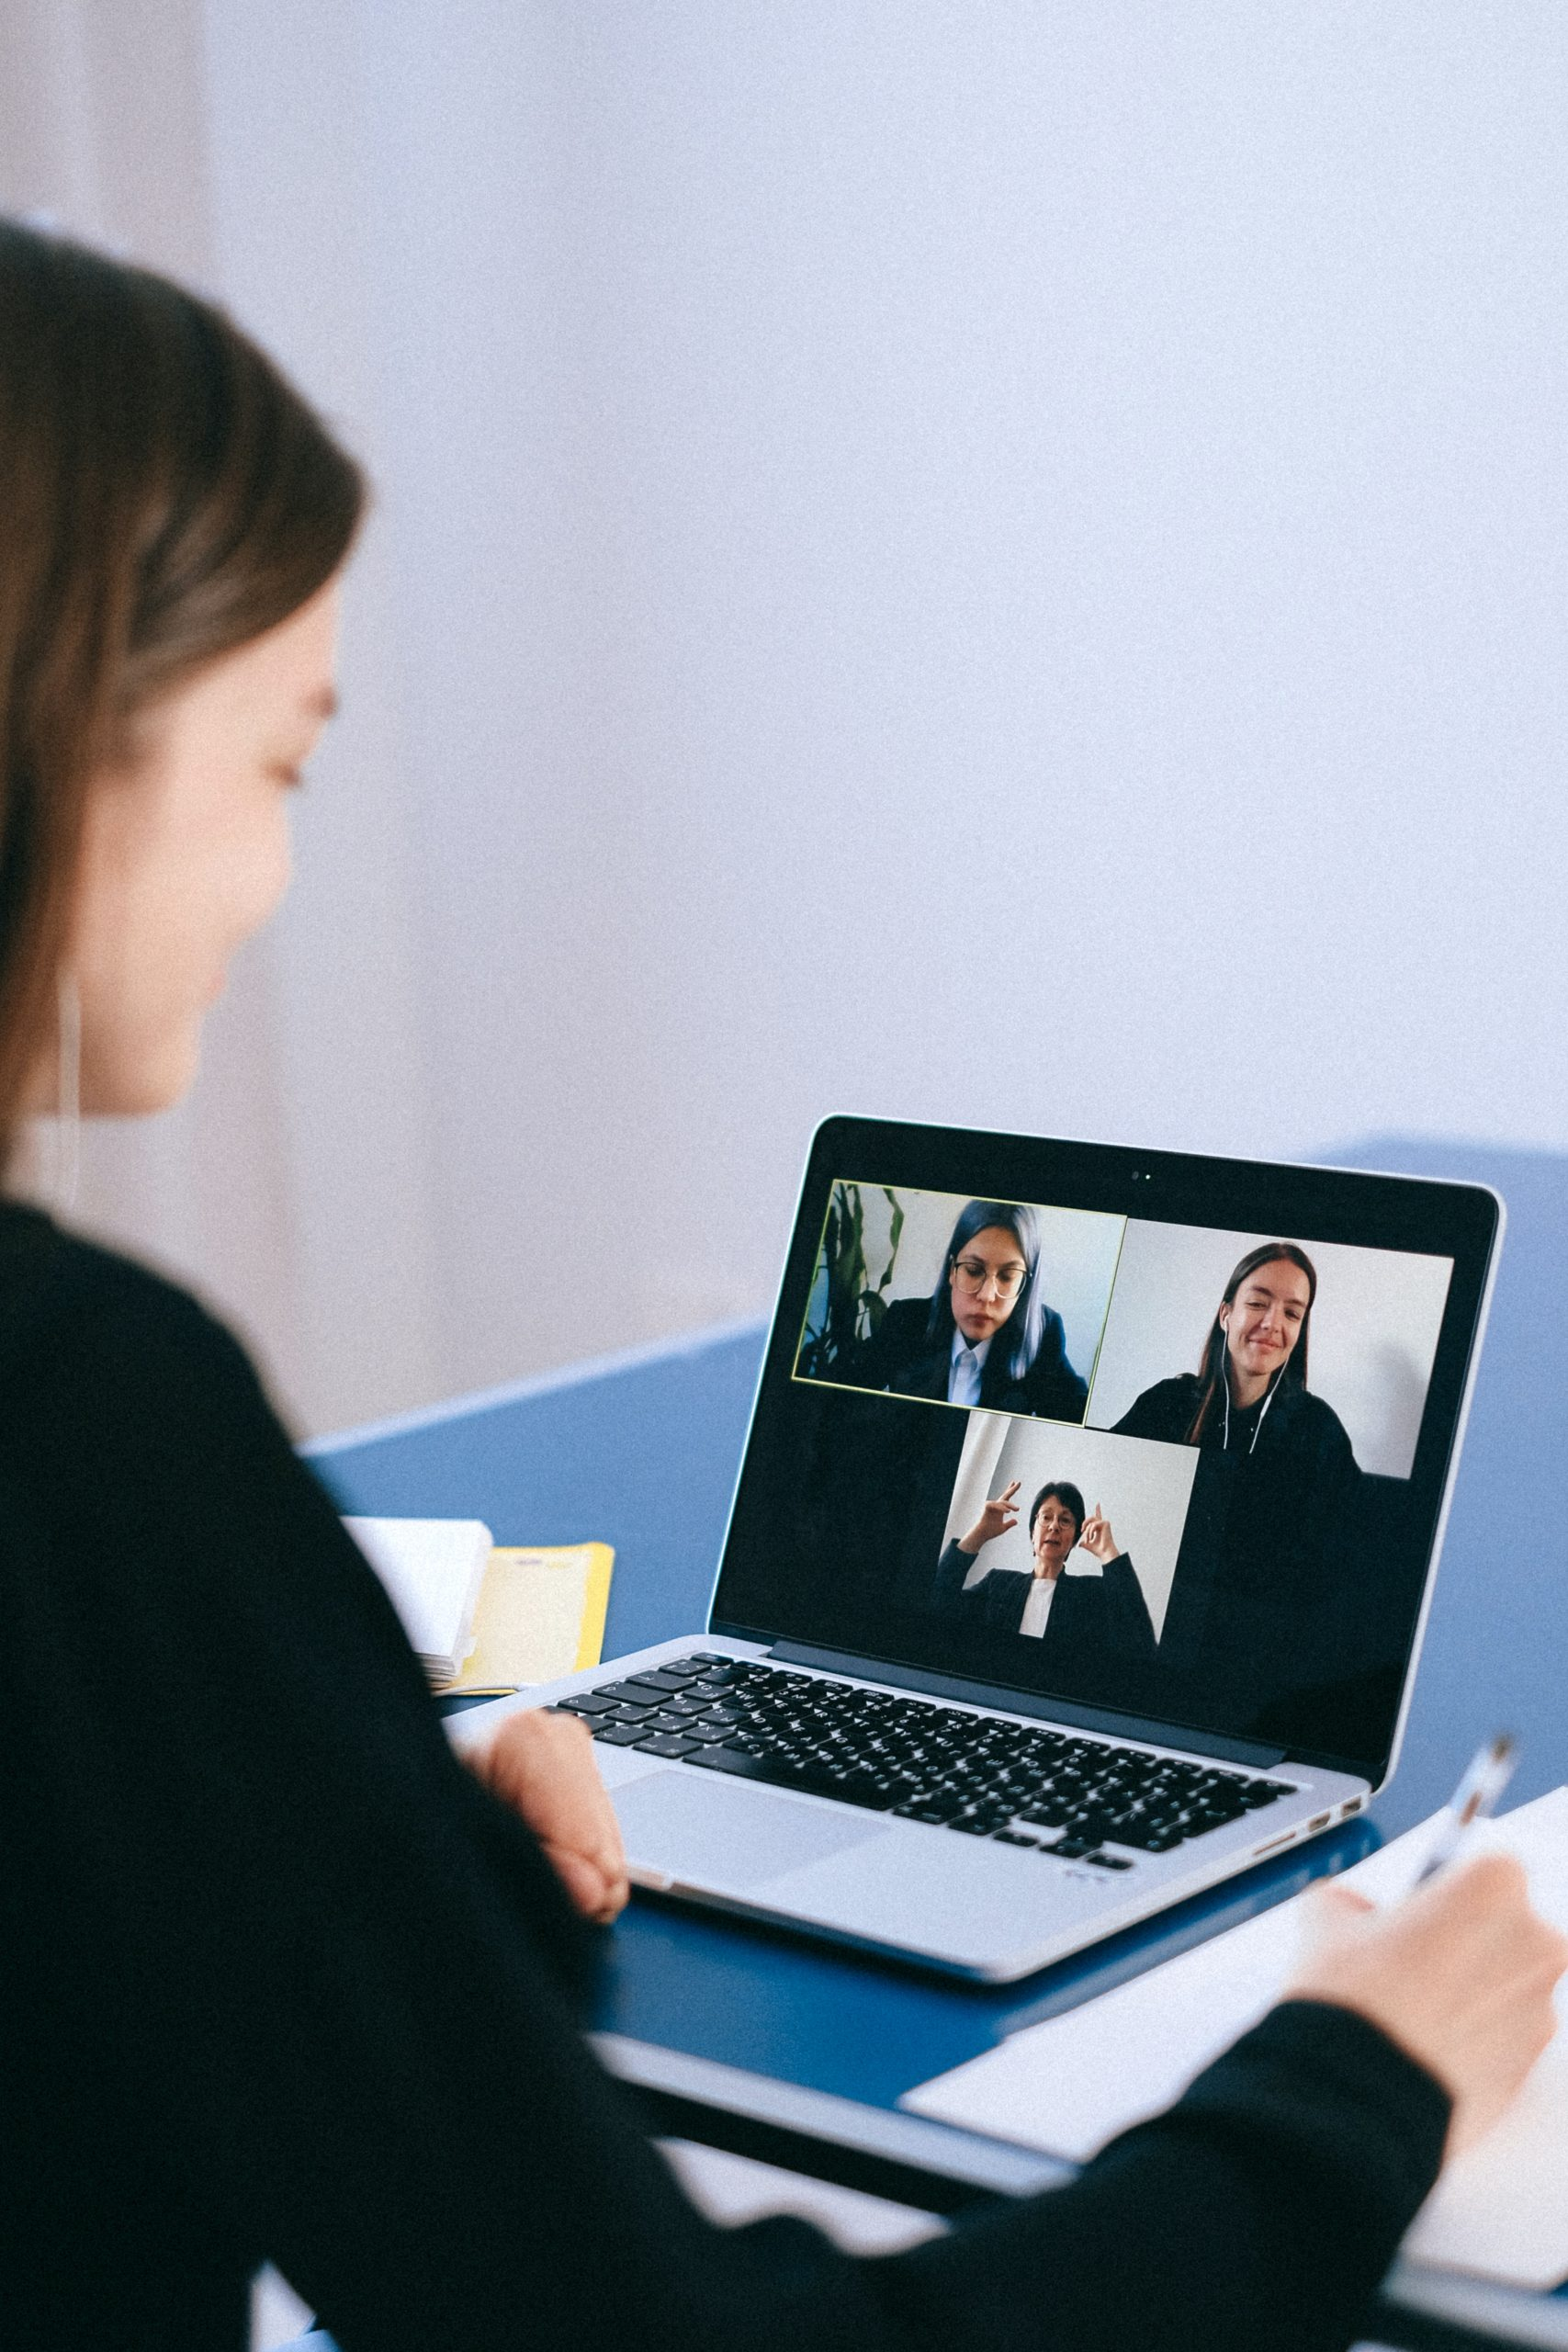 Person on a zoom call with people in their staff network